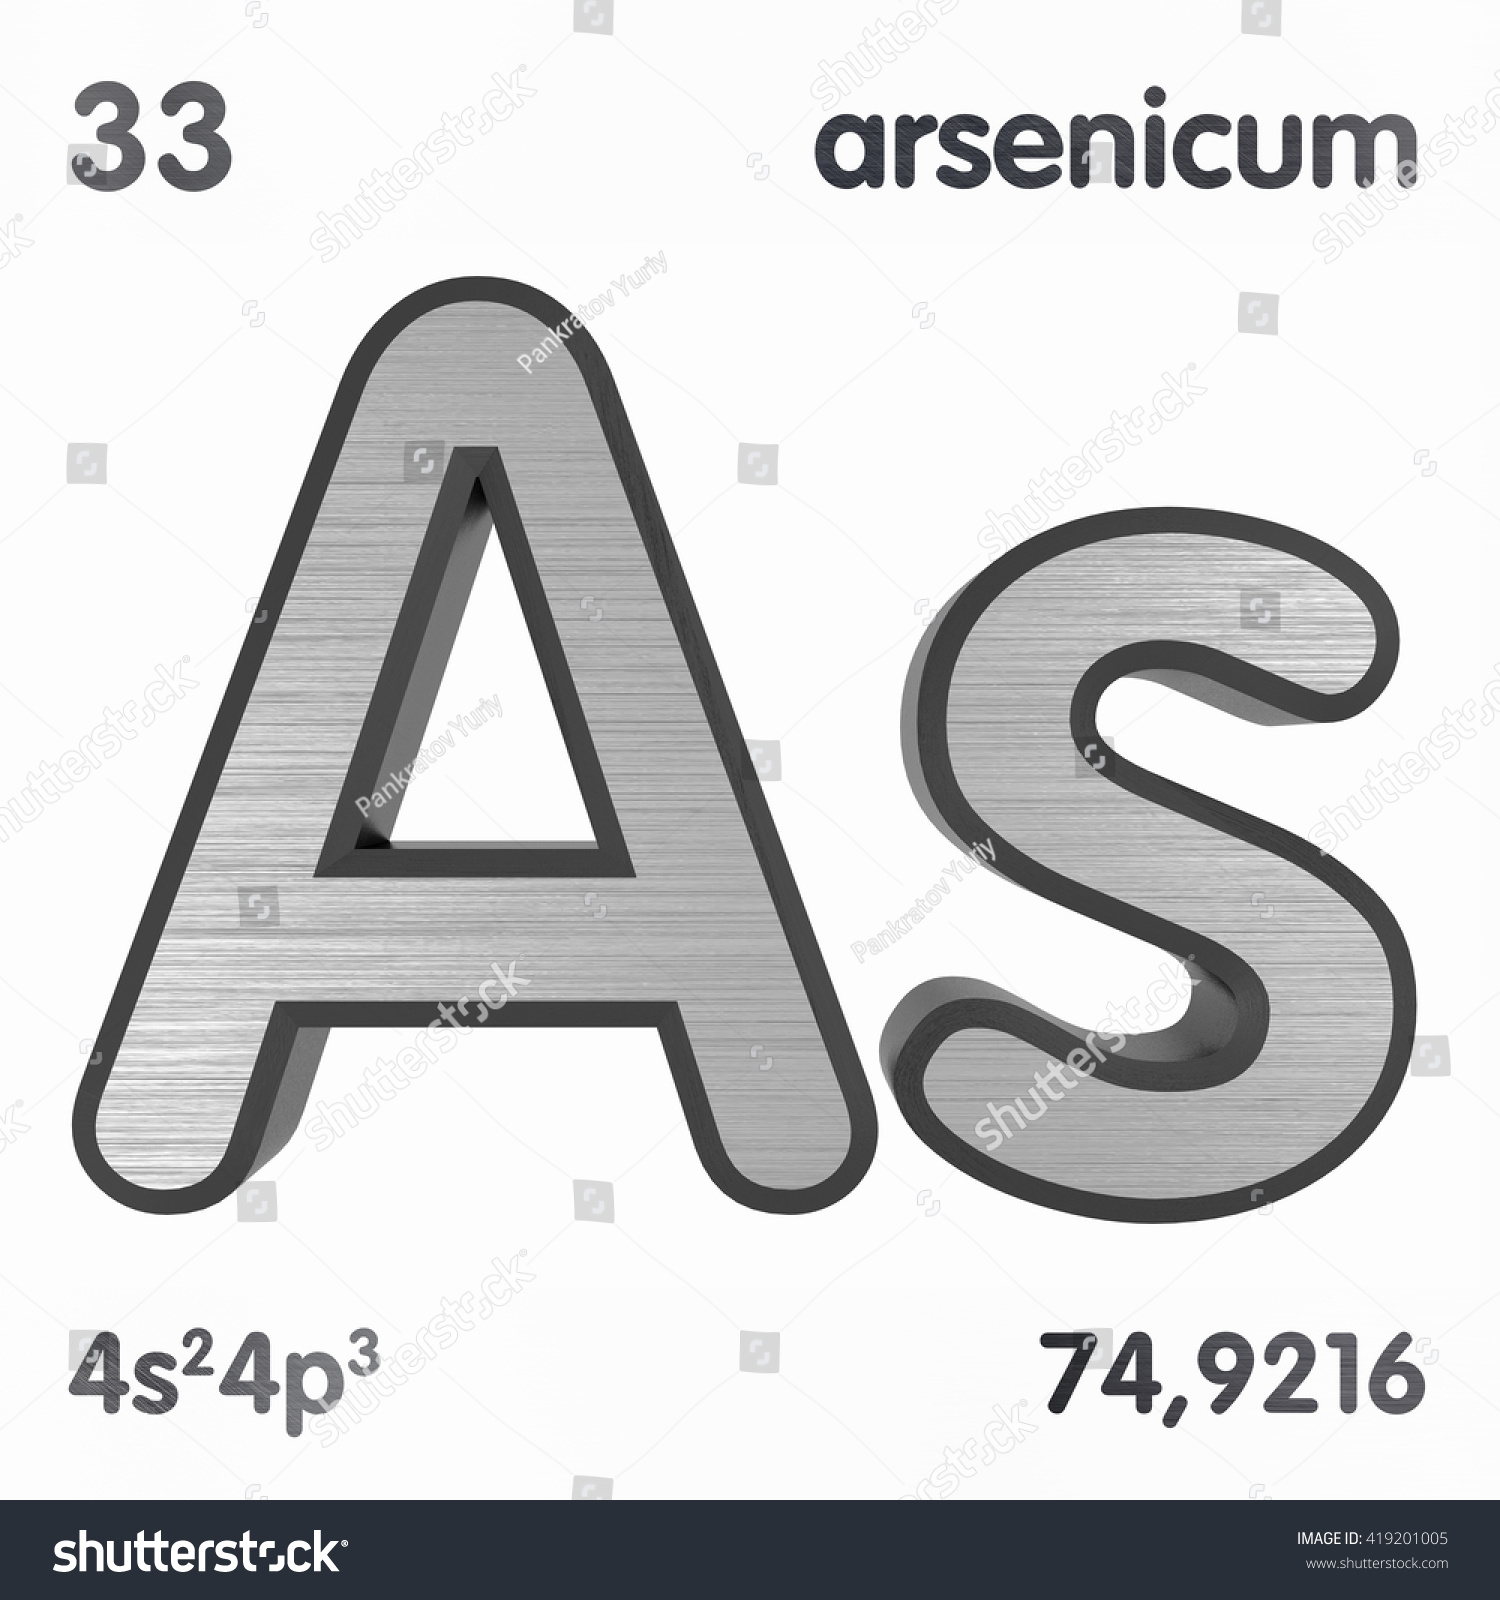 Periodic table elements arsenic 3d title stock illustration periodic table of elements arsenic 3d title isolated on white 3d rendering biocorpaavc Image collections